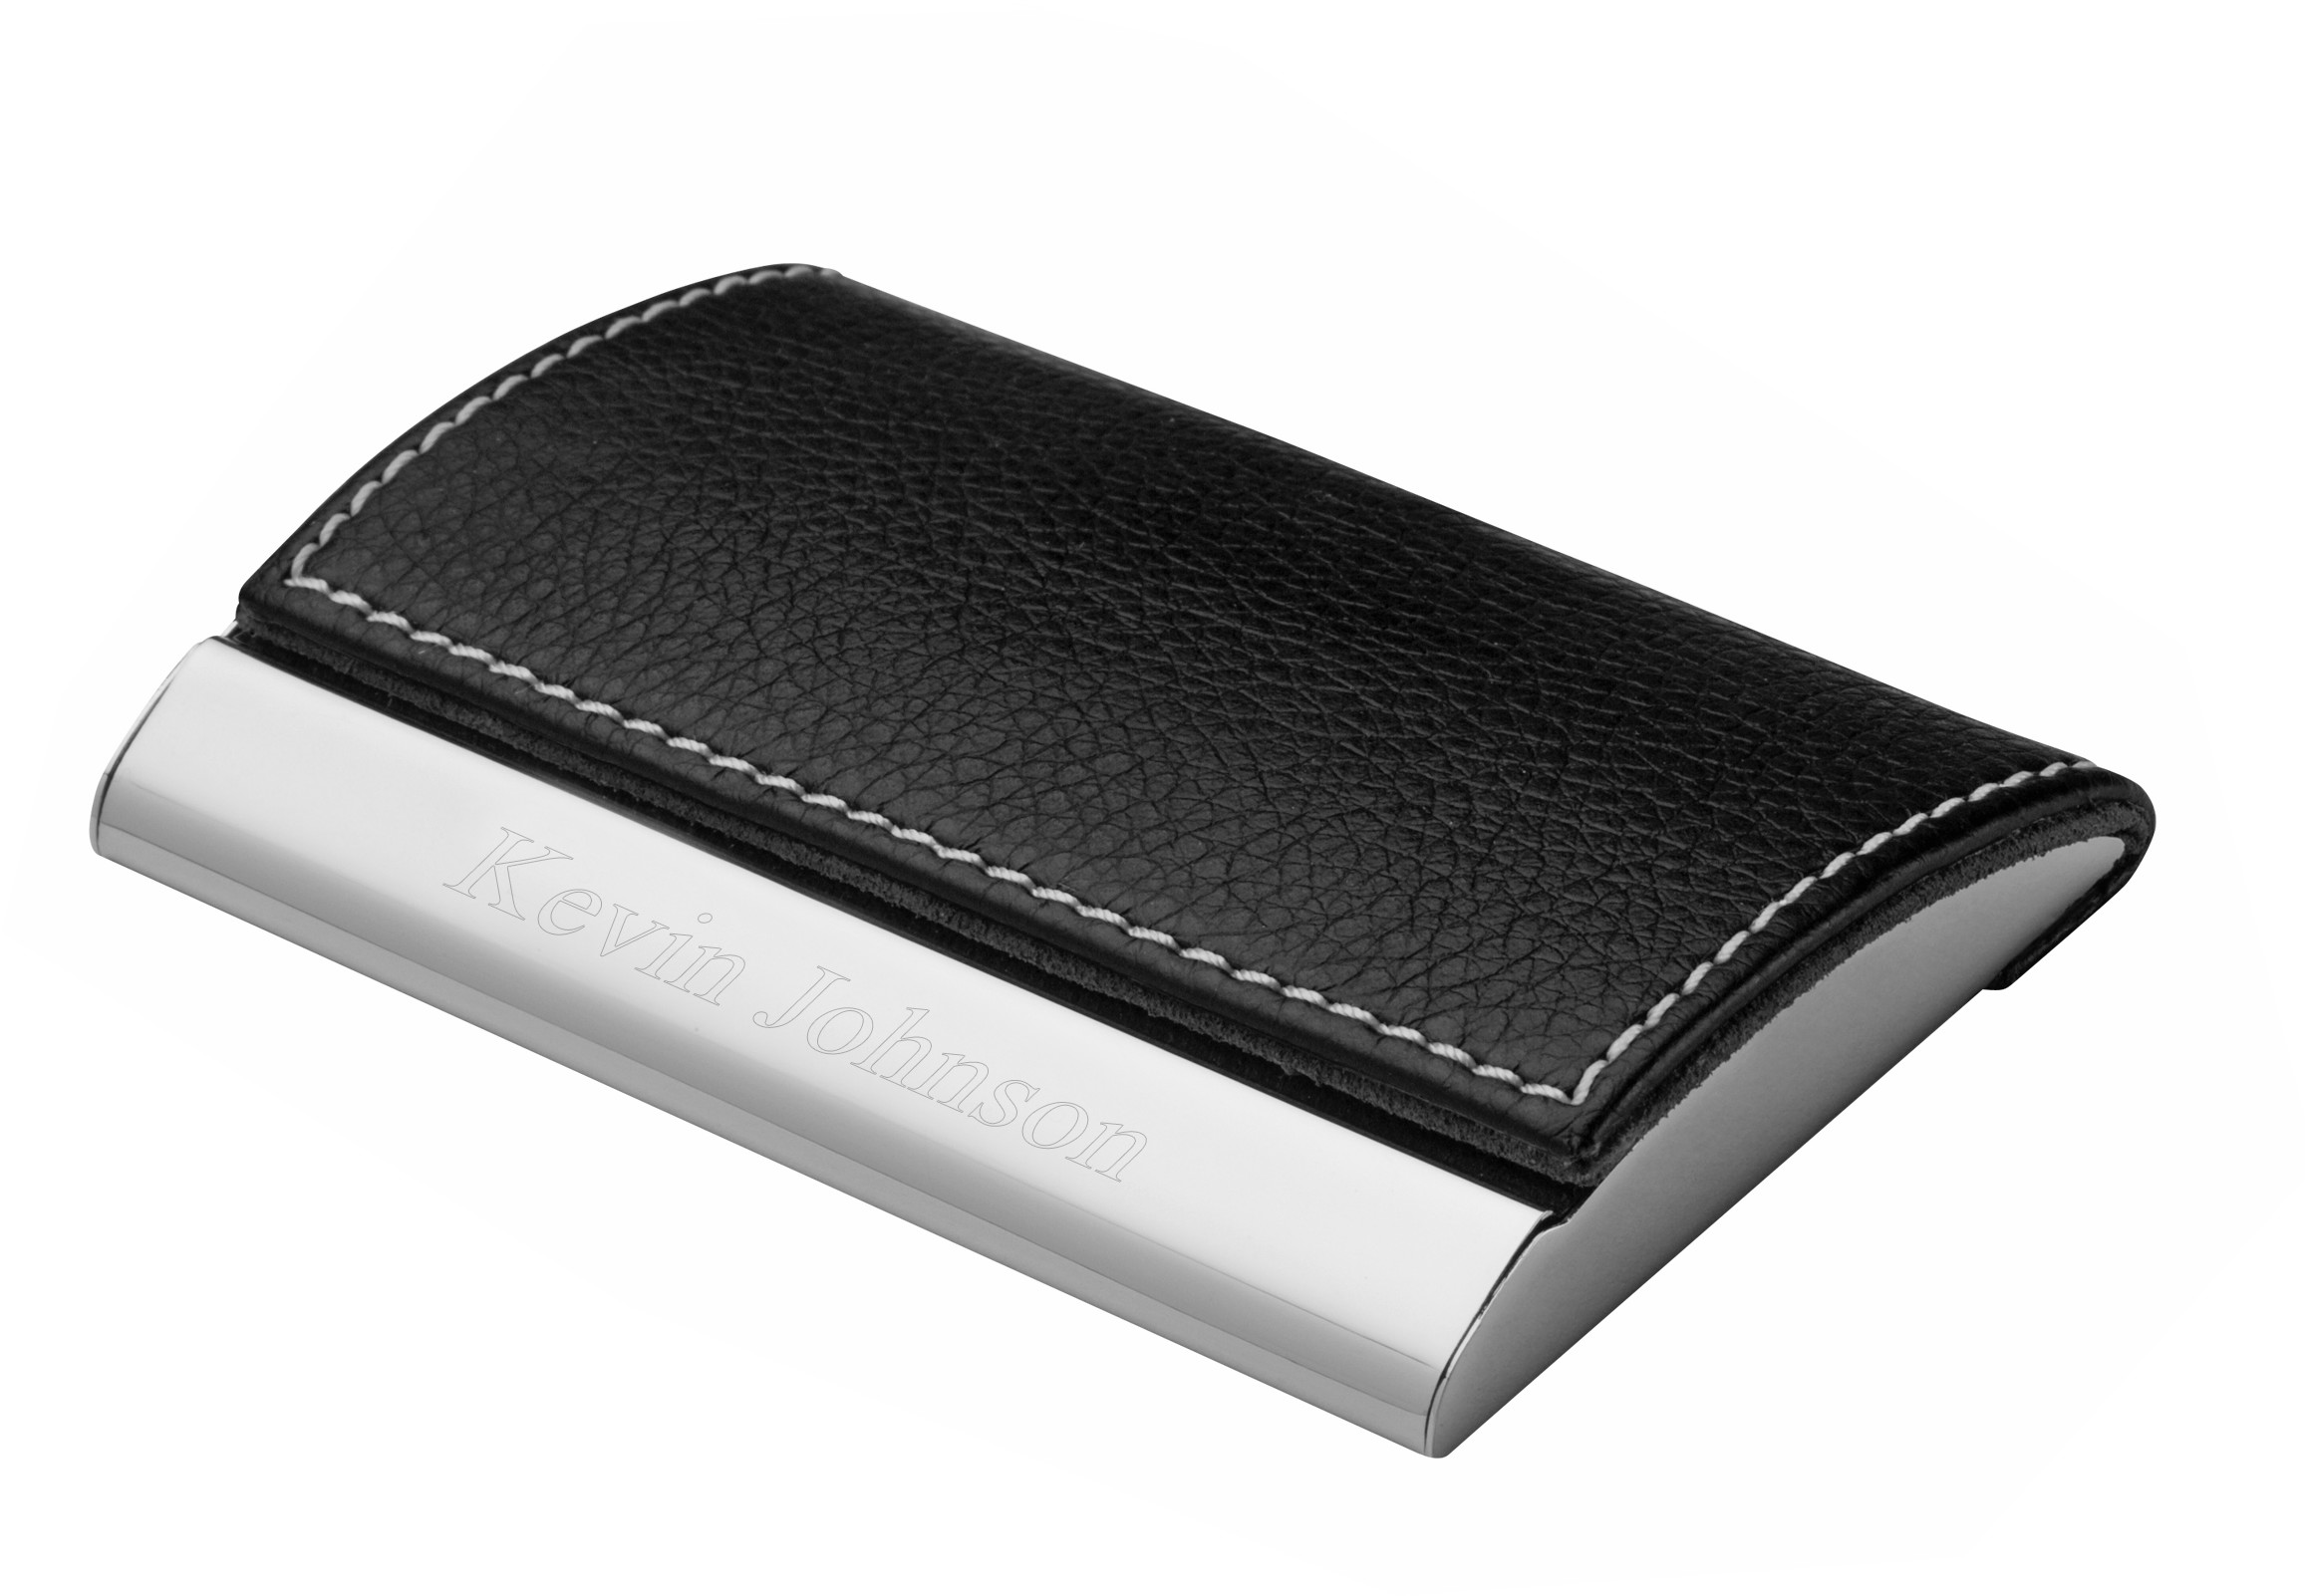 executive black leather business card case - Leather Business Card Case